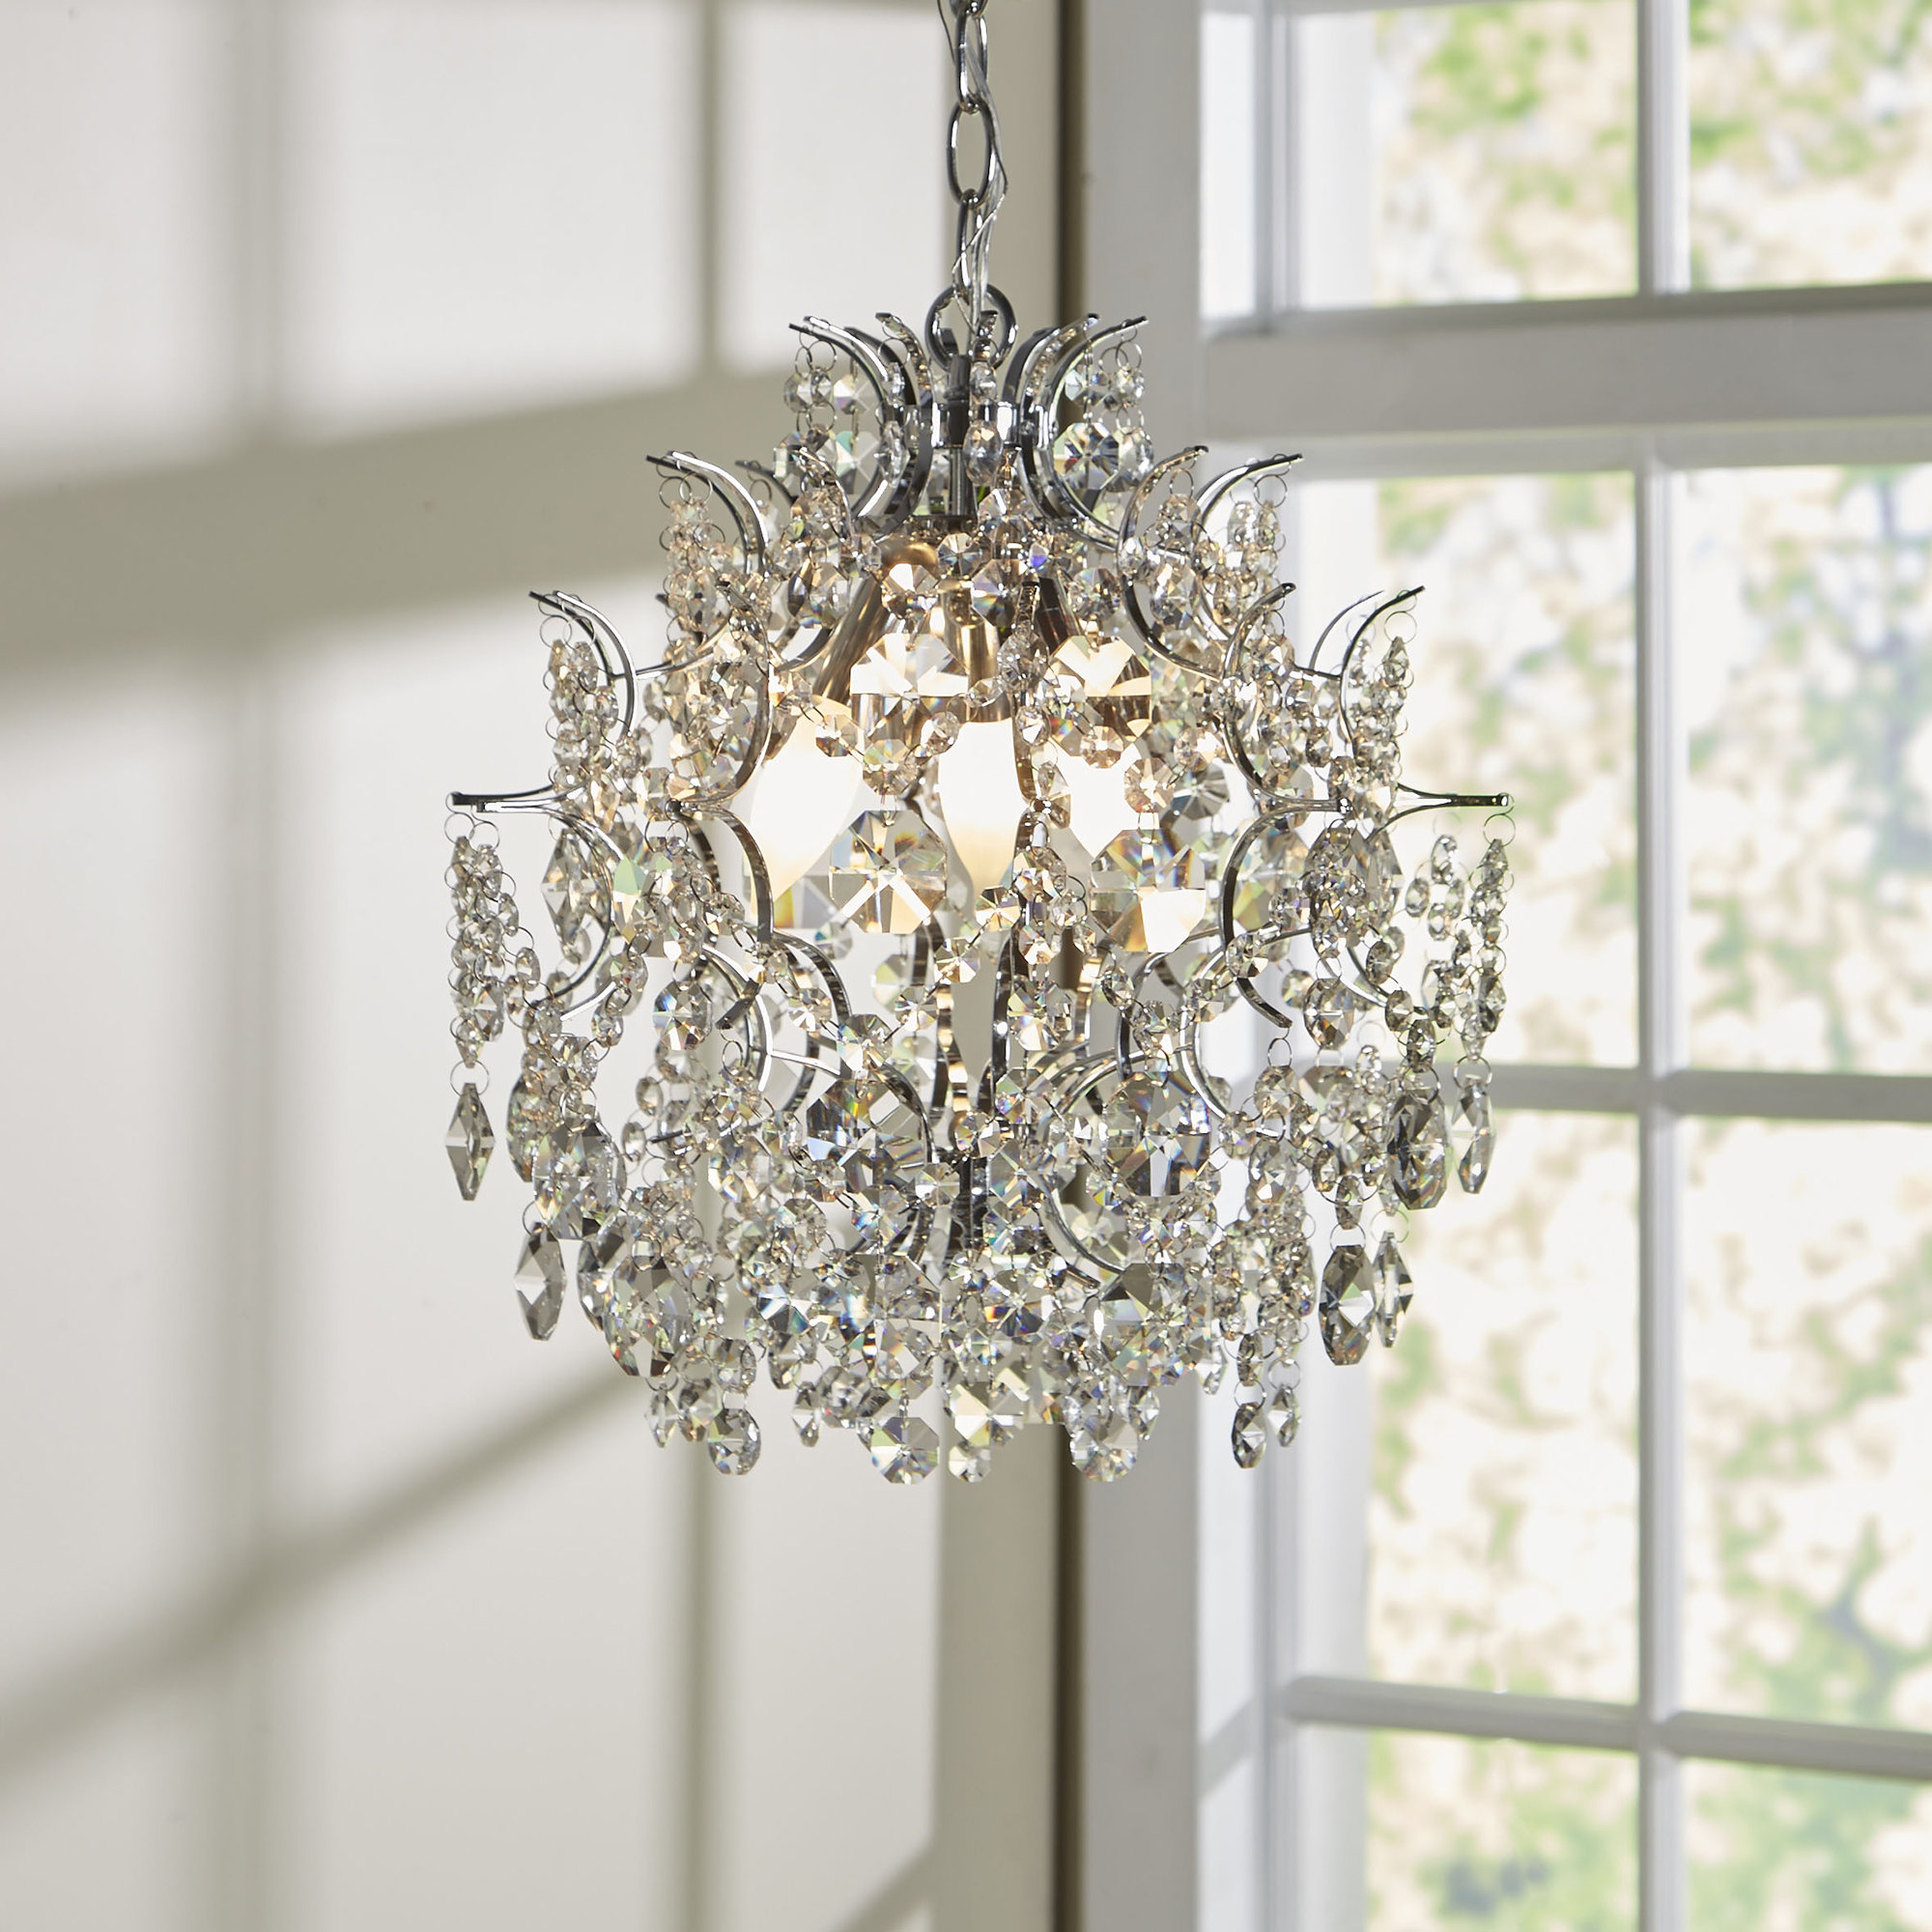 Willa Arlo Interiors Clea 3 Light Crystal Chandelier With Best And Newest Benedetto 5 Light Crystal Chandeliers (View 11 of 20)